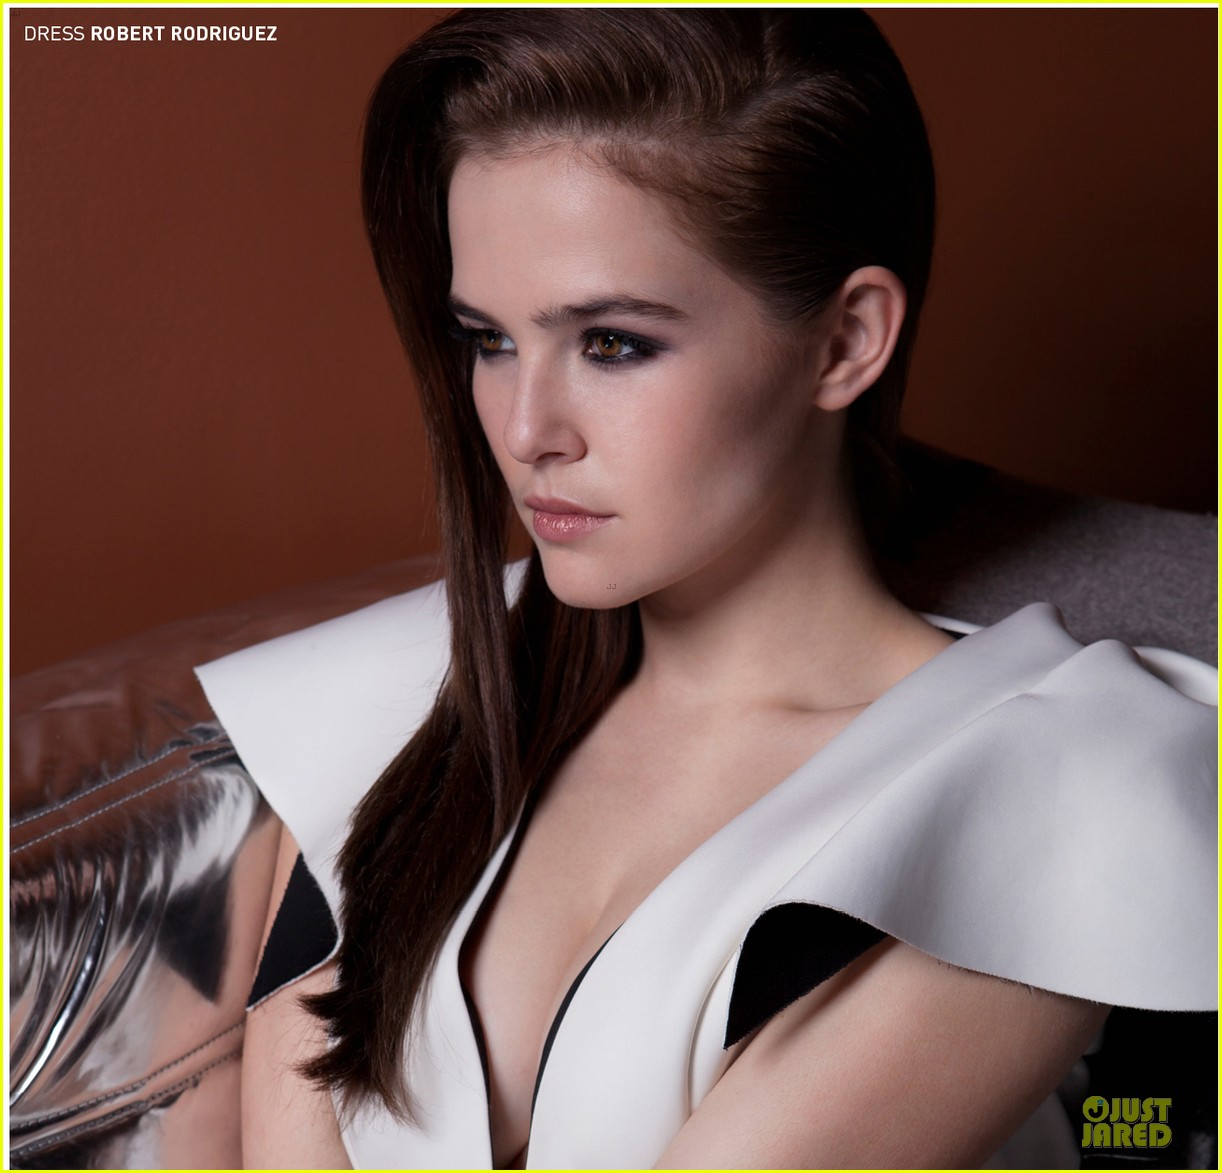 ��� ��� ����� ��� ���� ���� ����� 2014 , ���� ��� ��� ����� 2015 Zoey Deutch